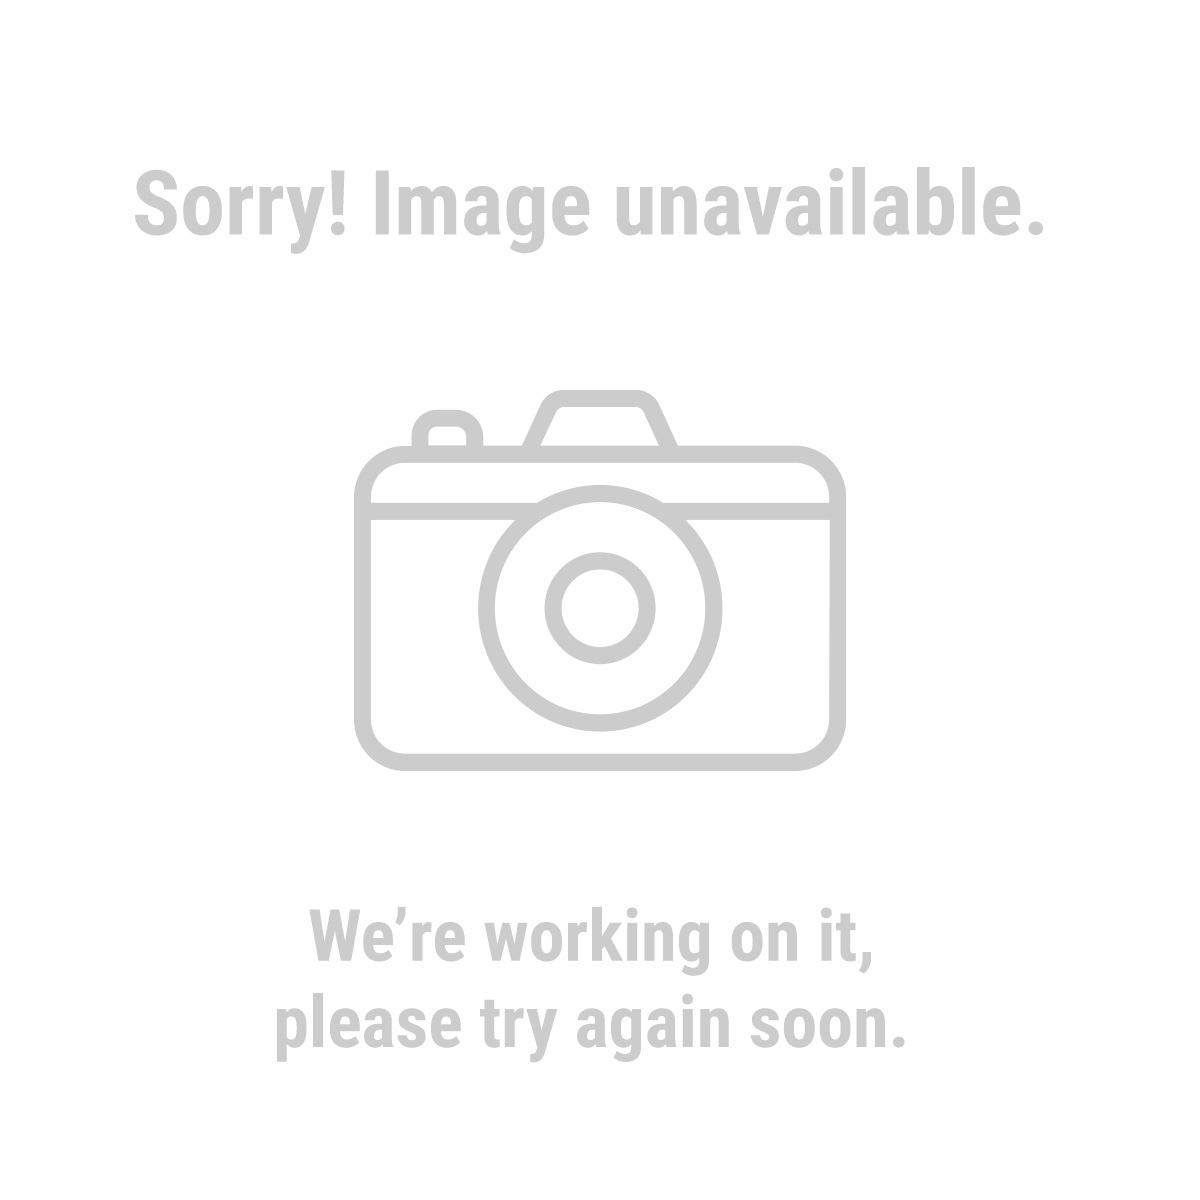 Used Band Saw Prices